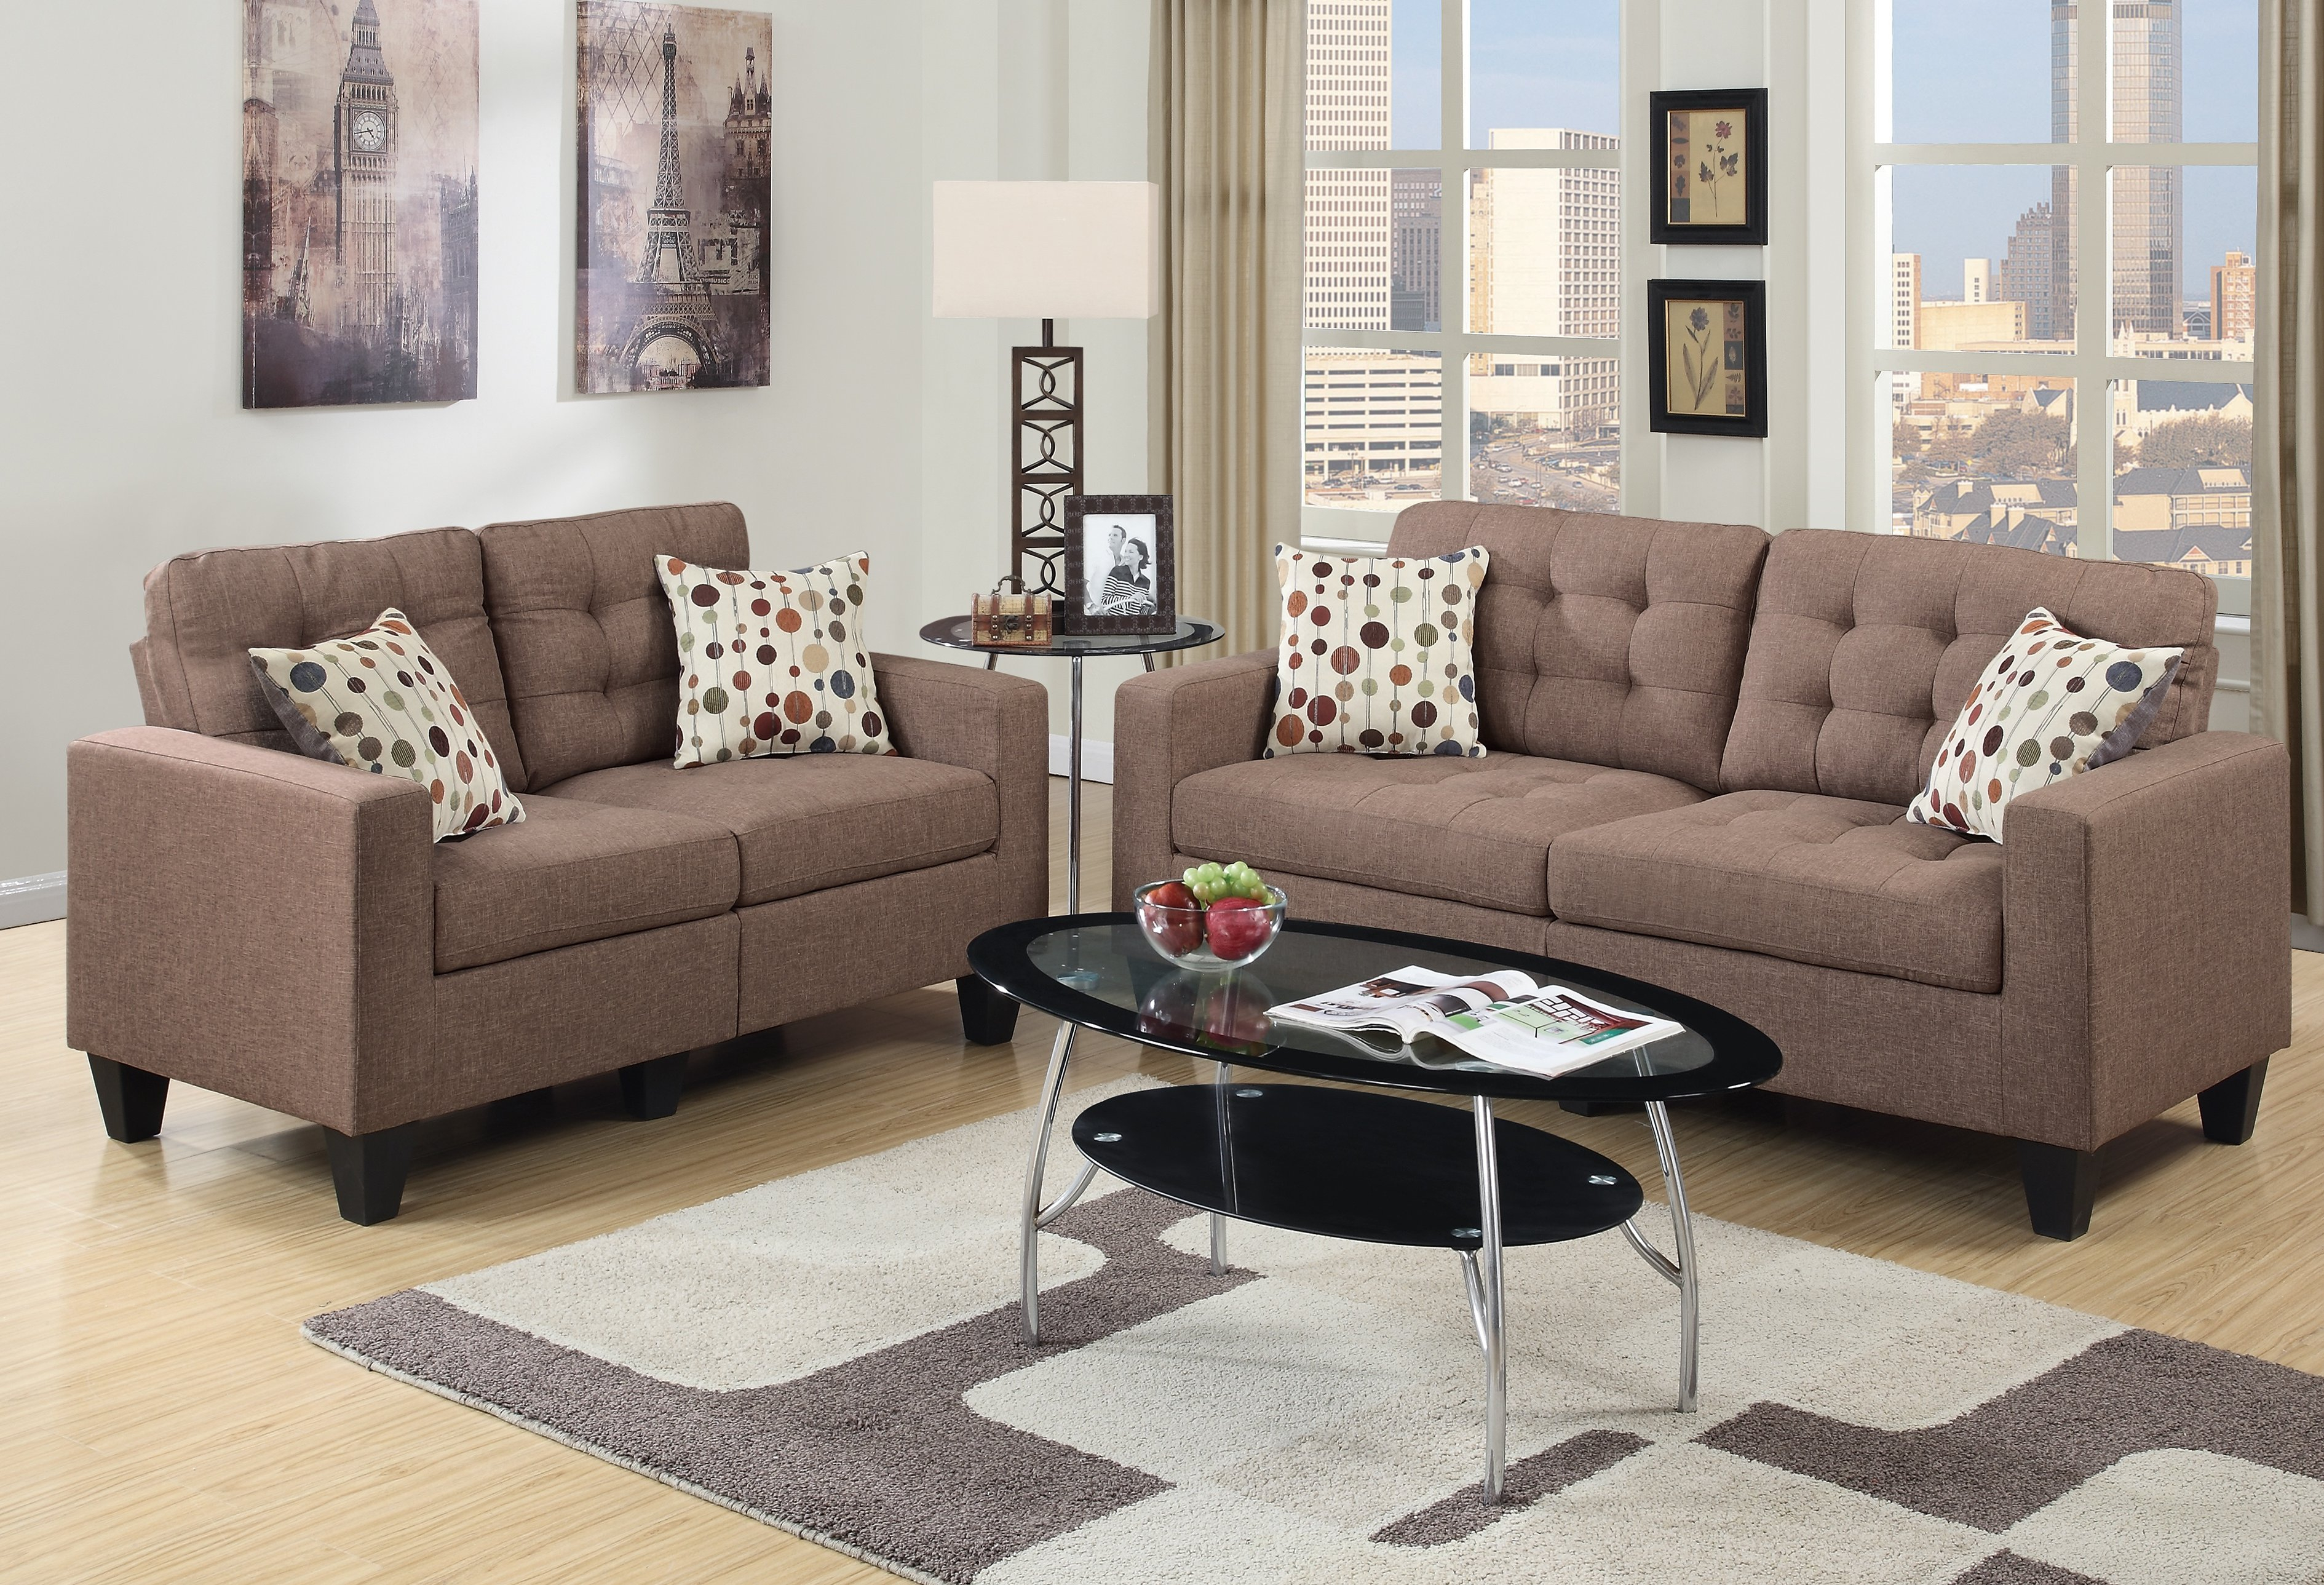 Andover Mills Callanan 2 Piece Living Room Set Reviews Wayfair with 10 Clever Designs of How to Craft Three Piece Living Room Set